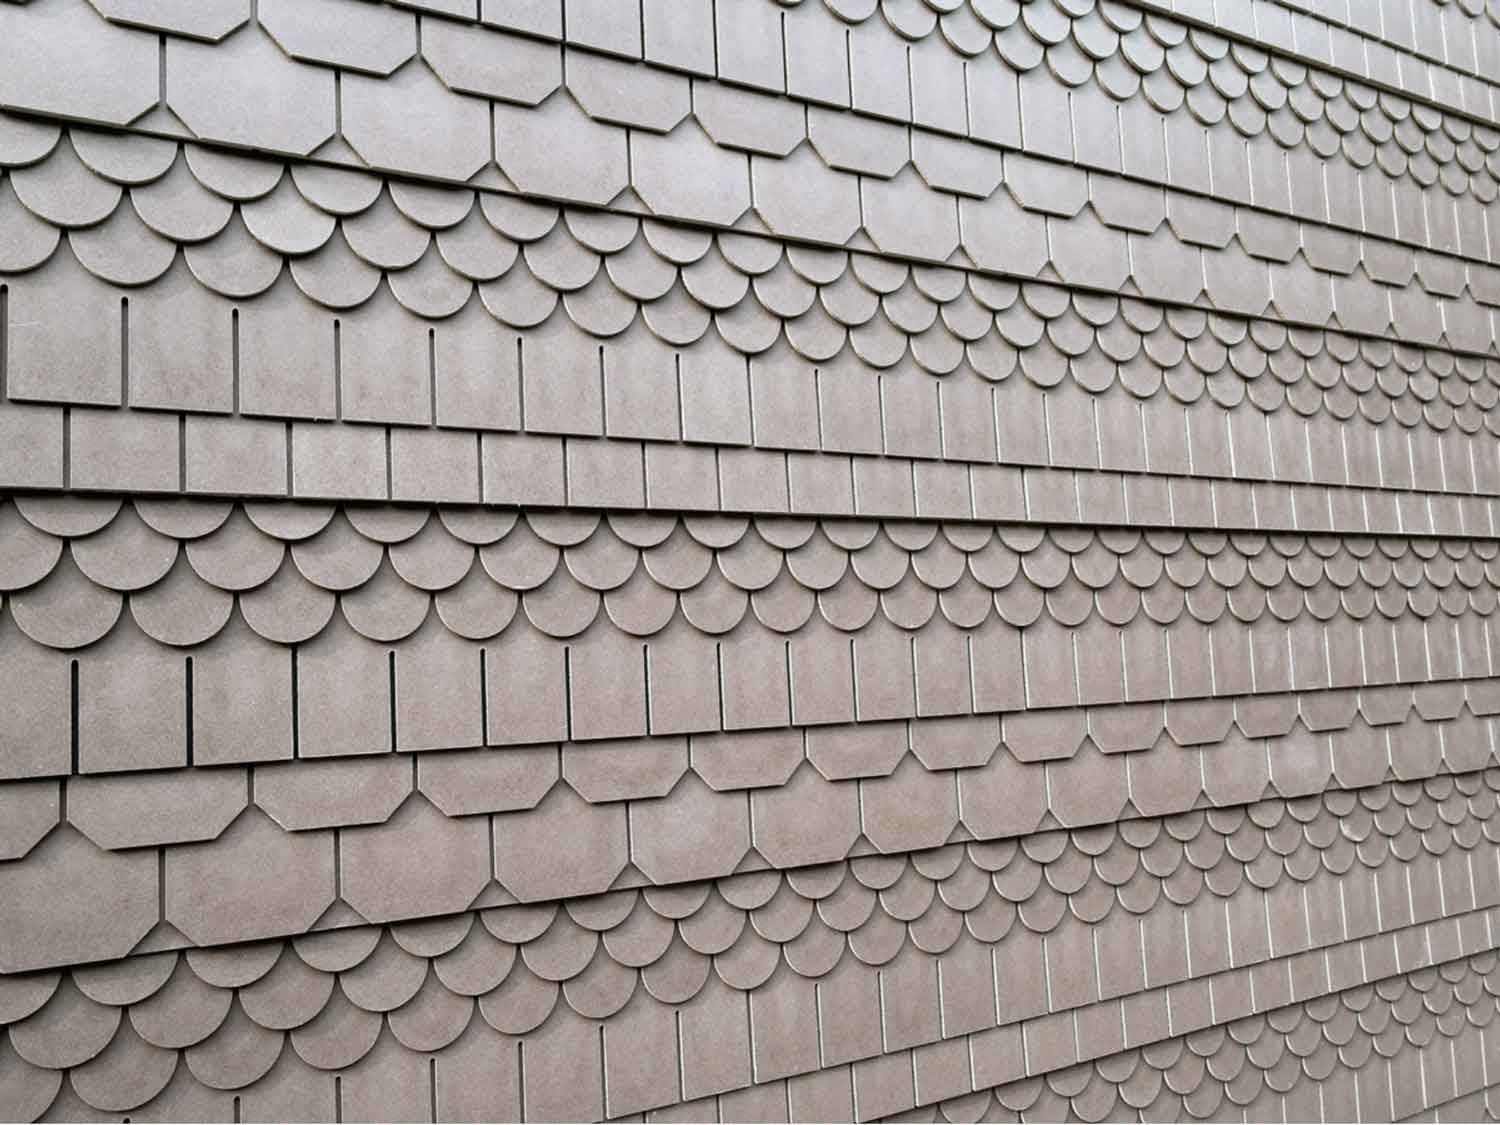 So Hot Right Now Scale Shingles In Architecture Design Architecture Design Shingling Architecture Details